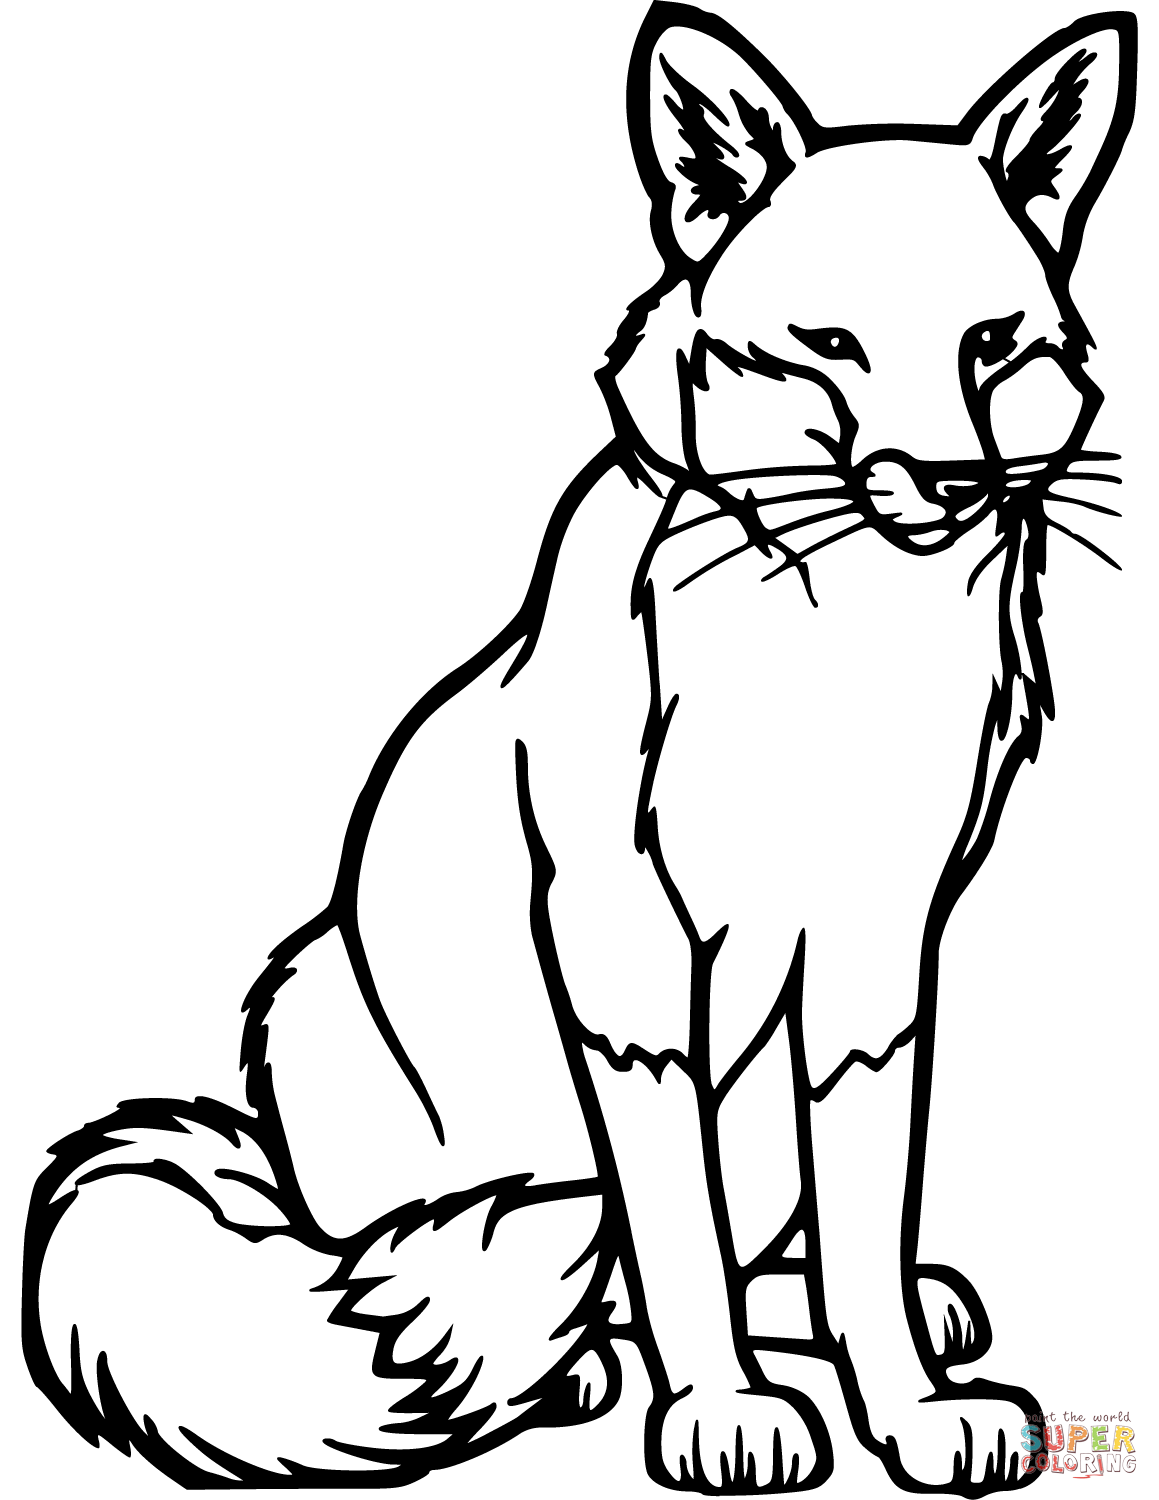 Red Fox Coloring Page Free Printable Coloring Pages Fox Coloring Page Fox Silhouette Animal Templates